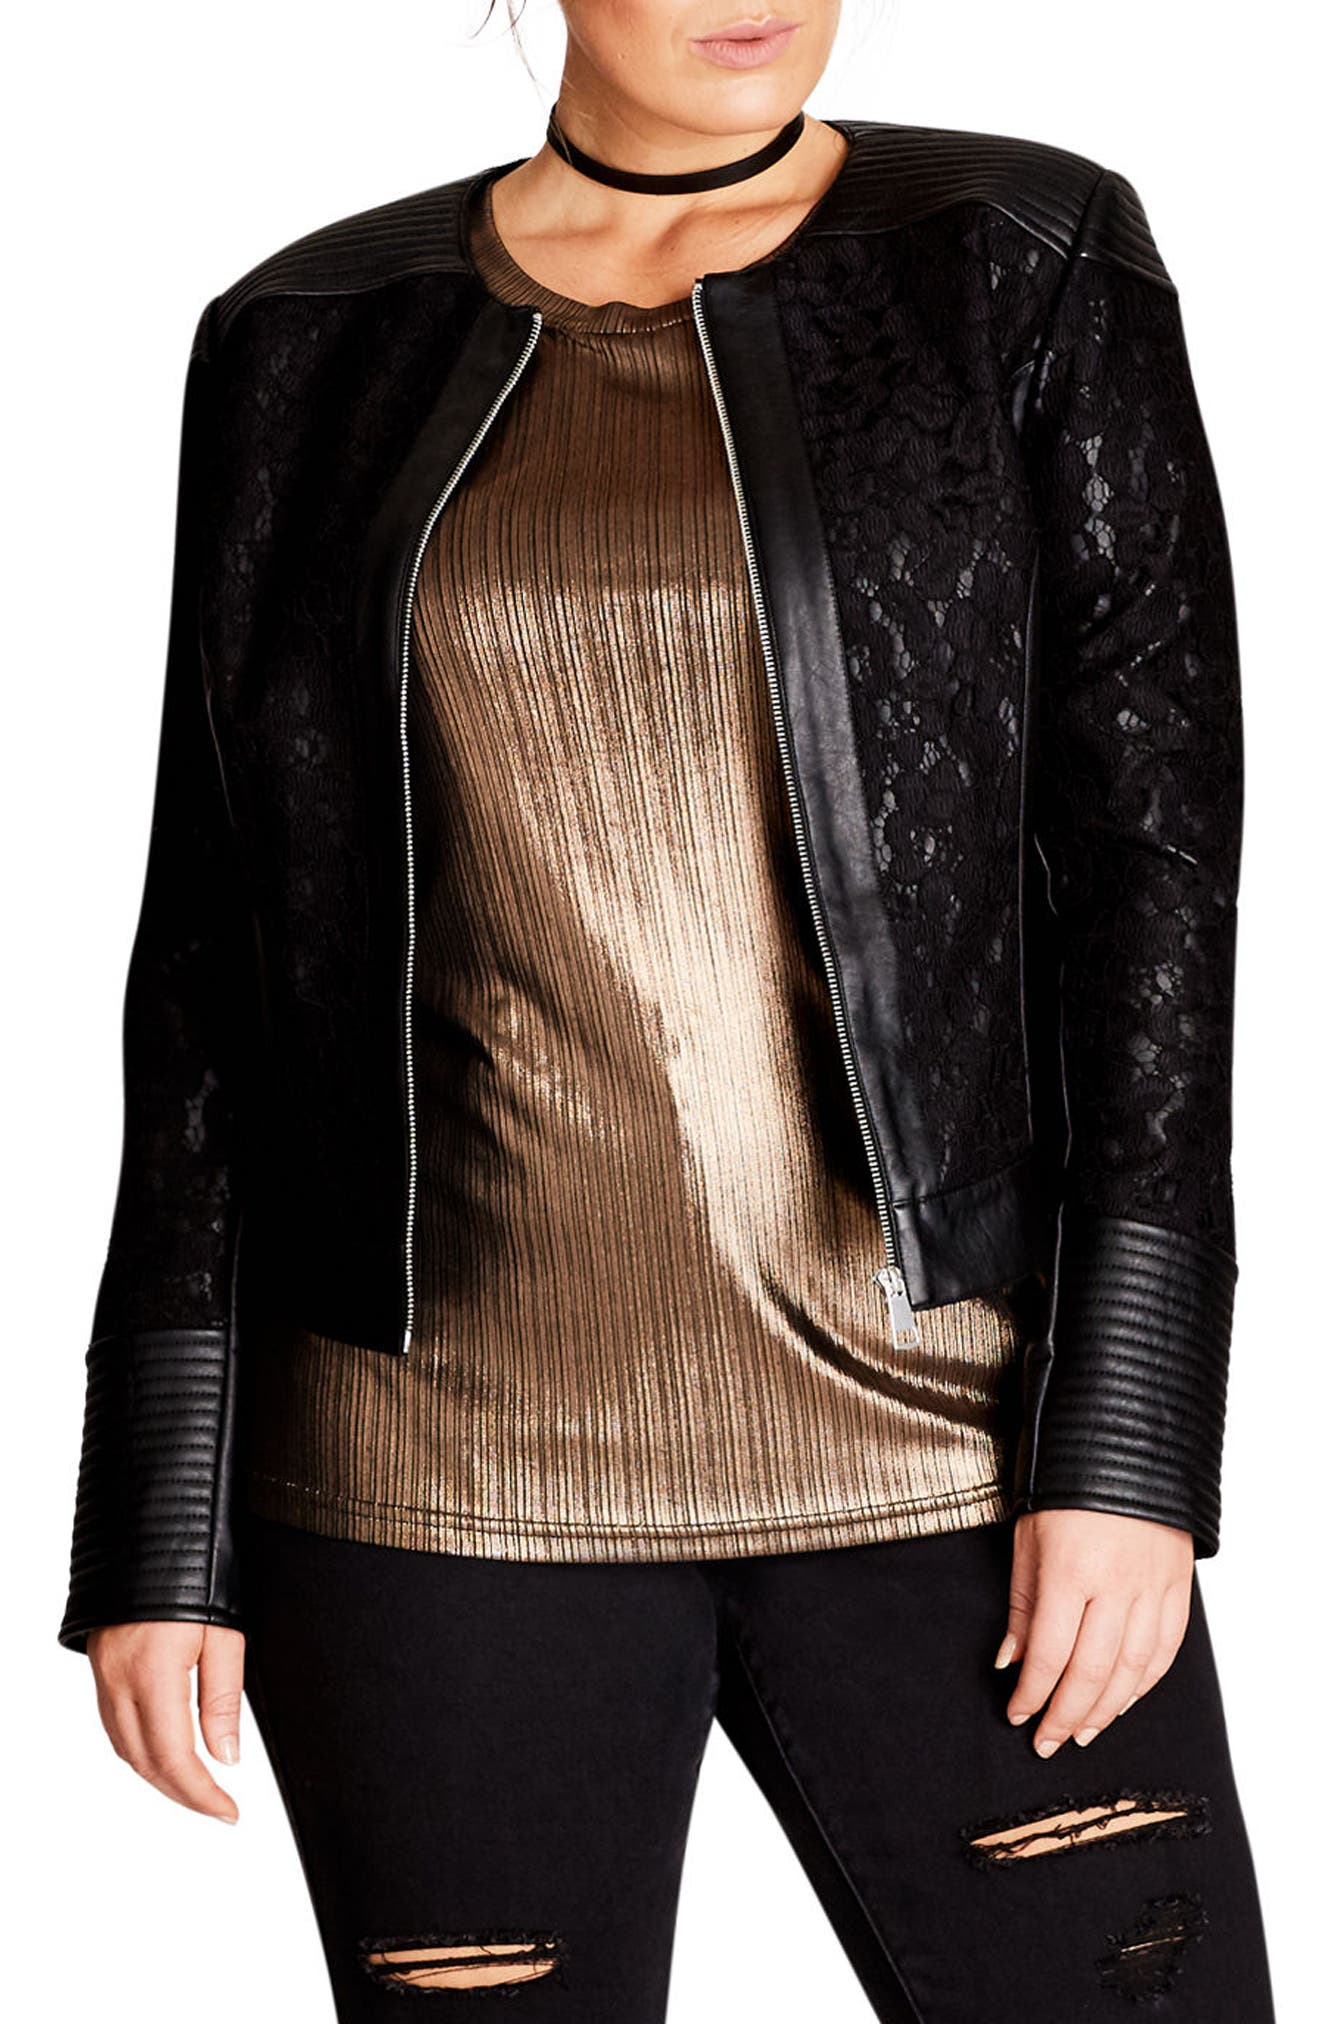 Alternate Image 1 Selected - City Chic Wild Heart Faux Leather Jacket (Plus Size)